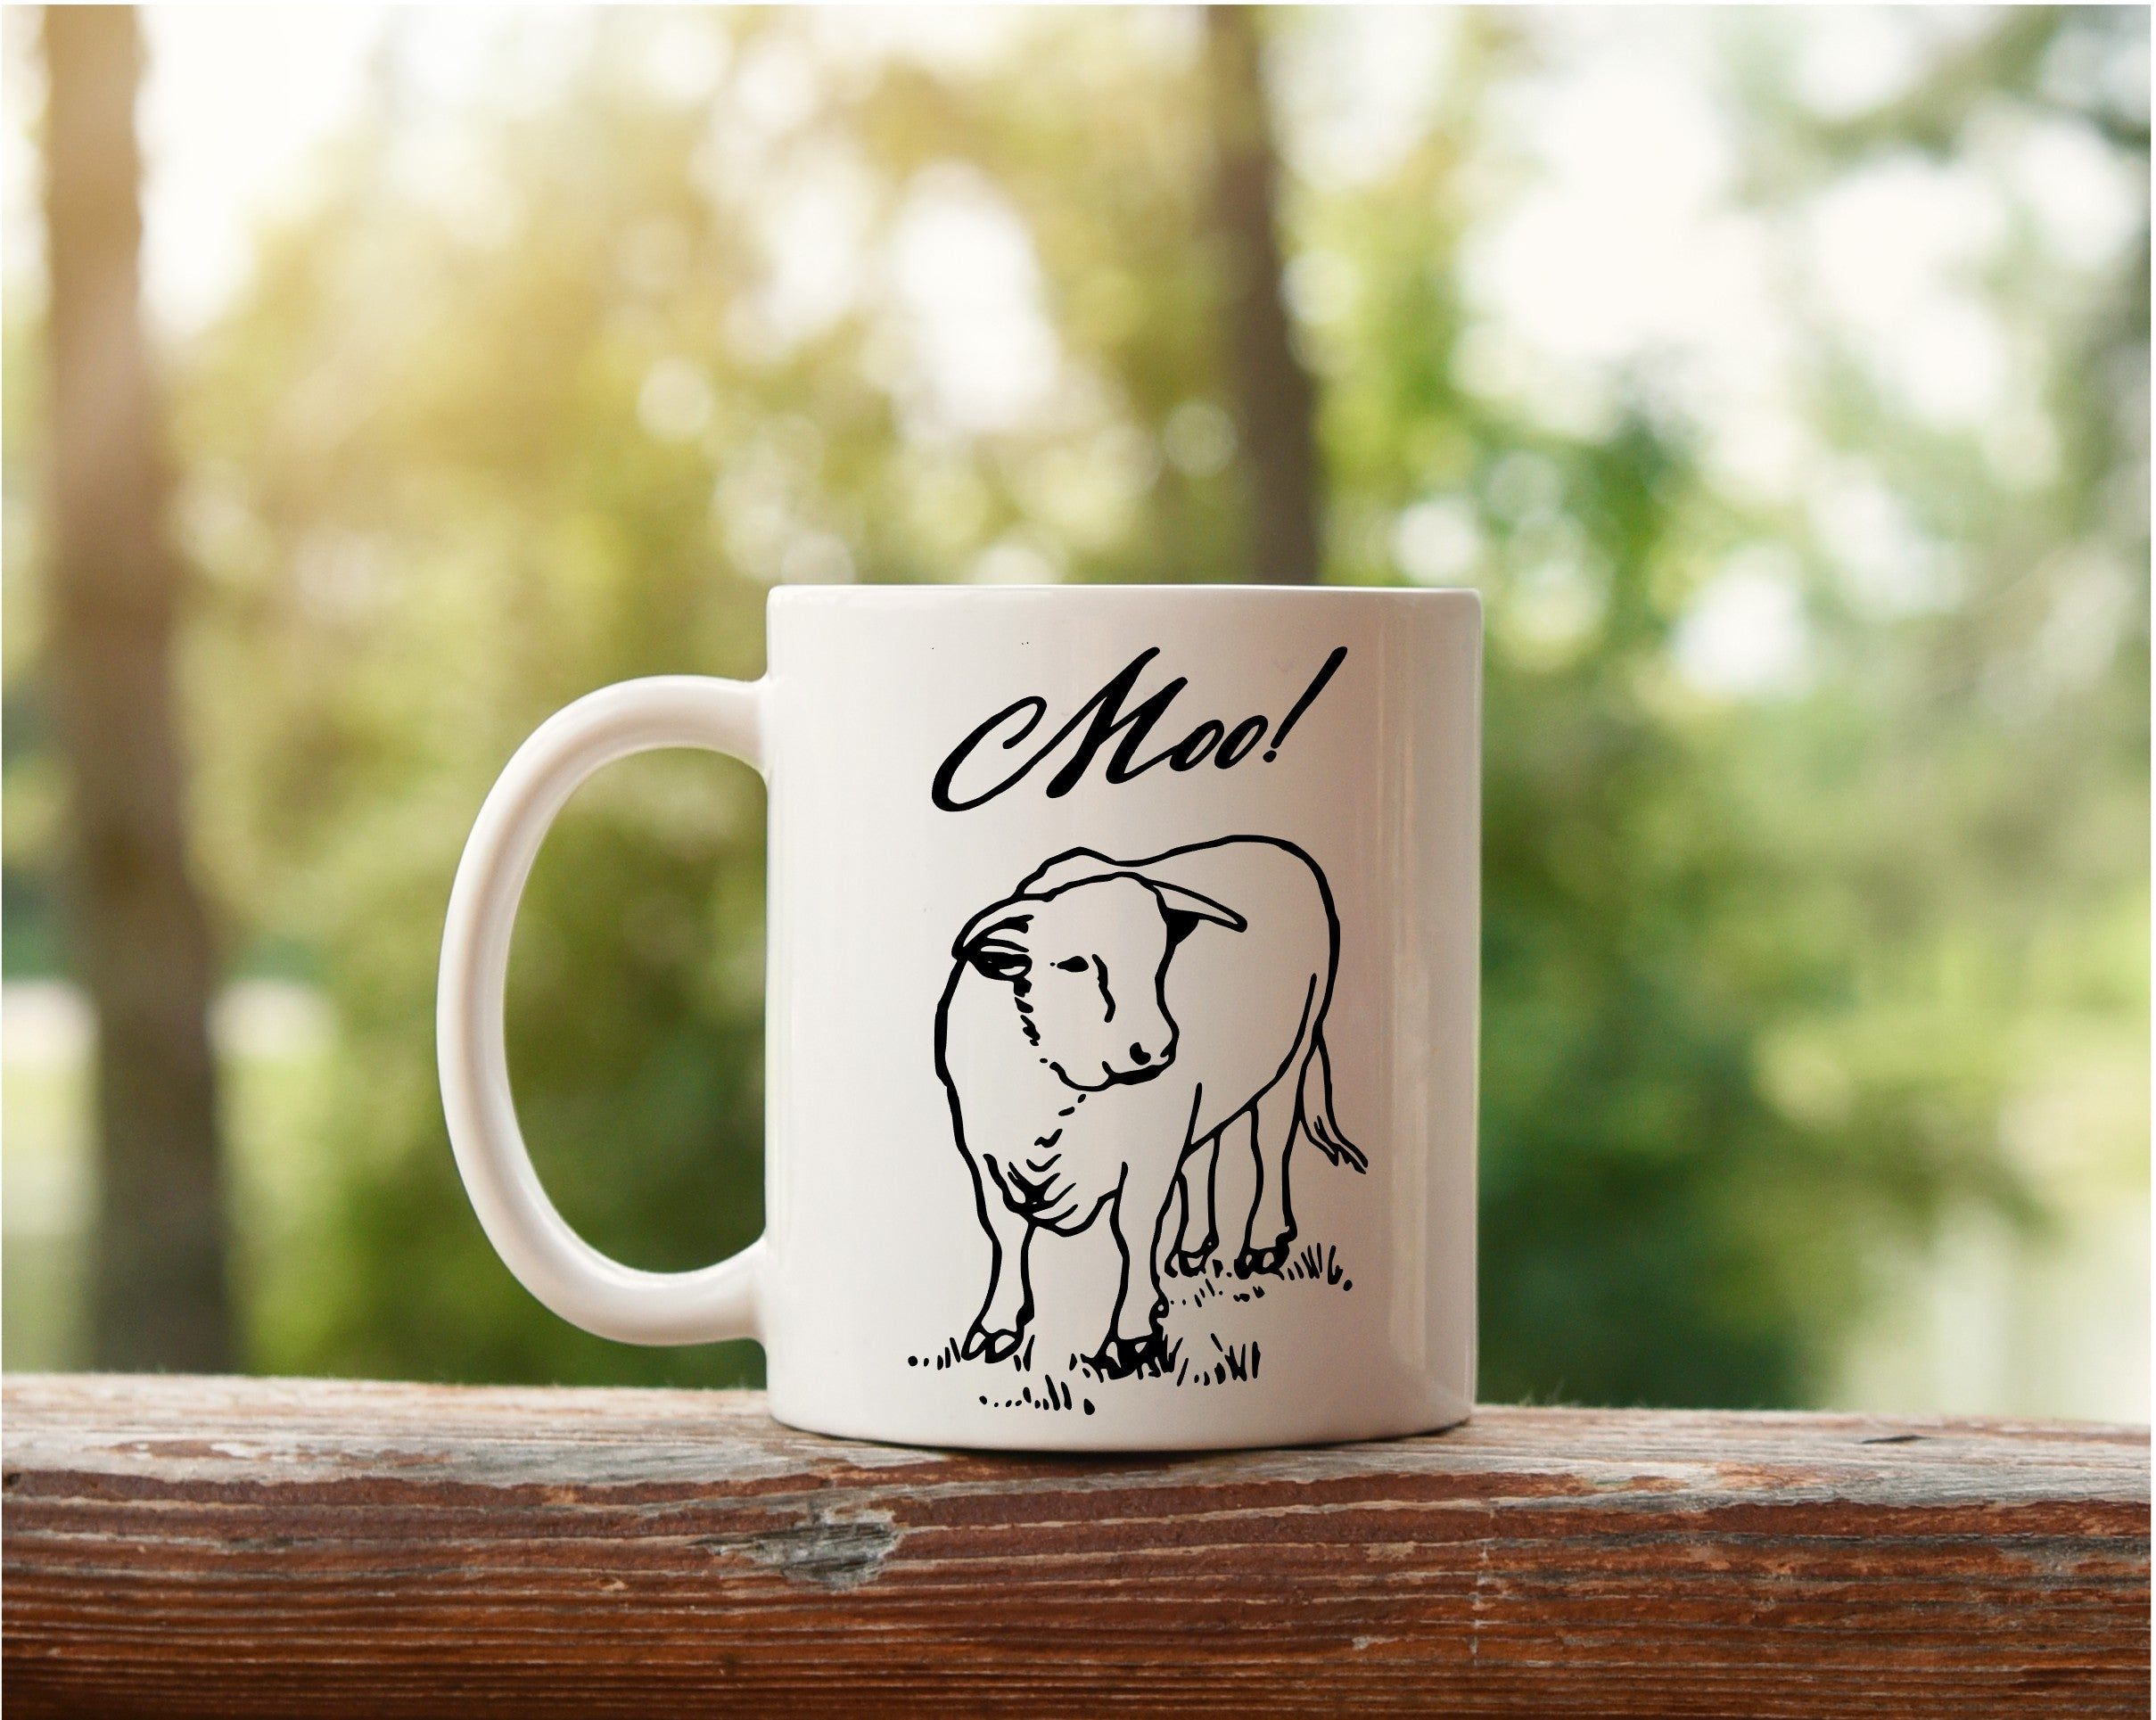 11 oz. Farmhouse Inspired Coffee Mug - Moo